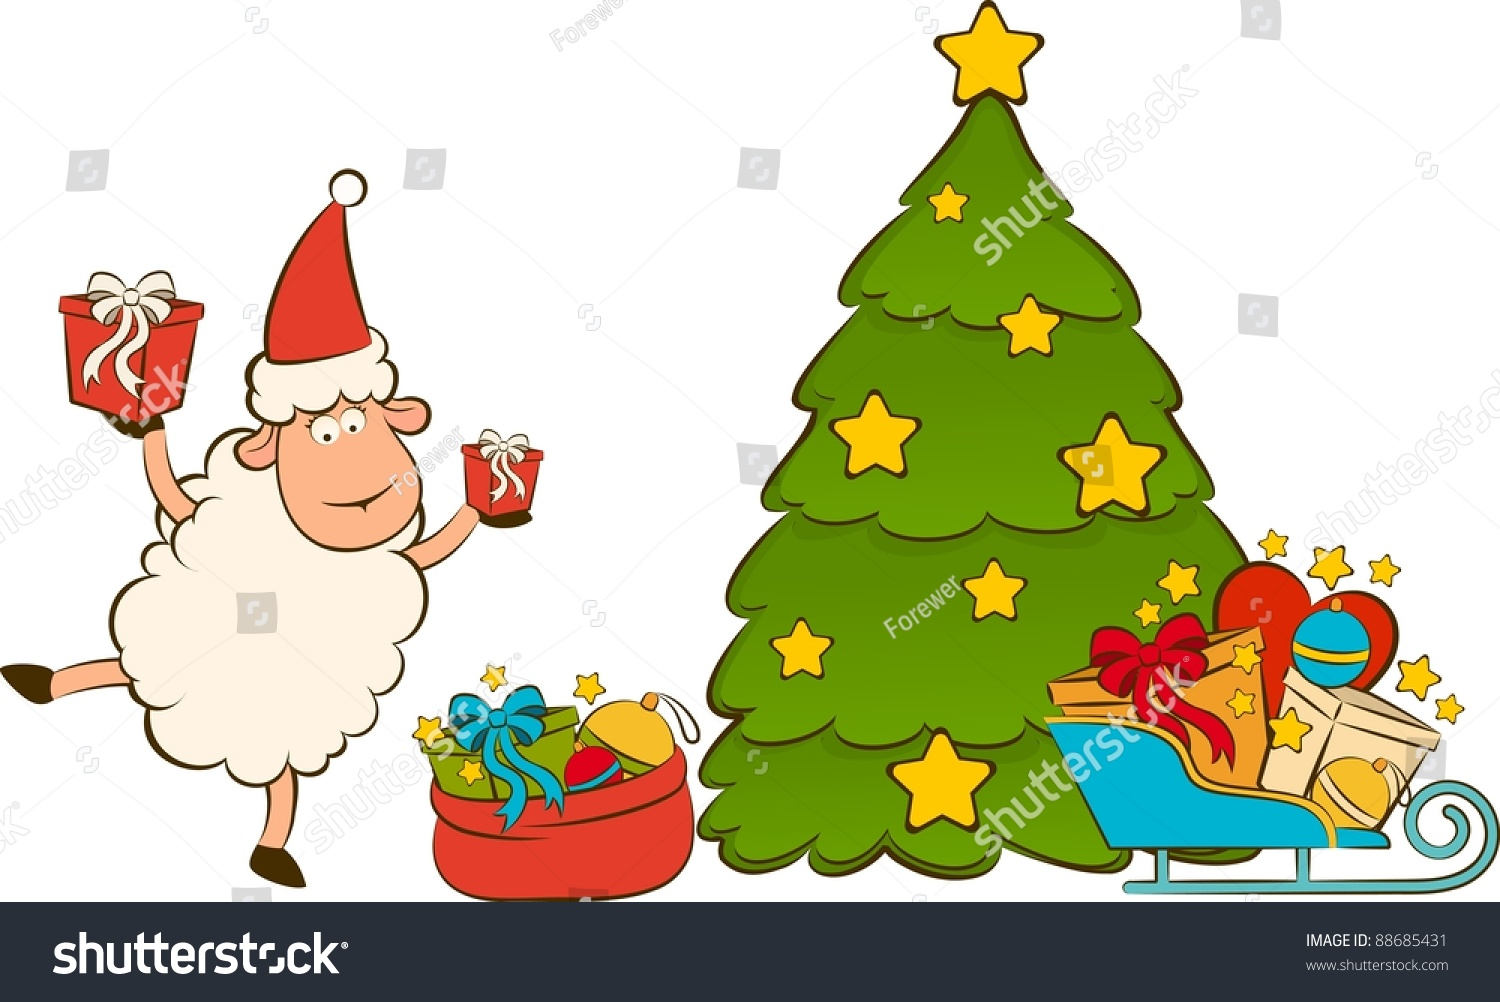 92 vector of a cartoon christmas tree and gifts children